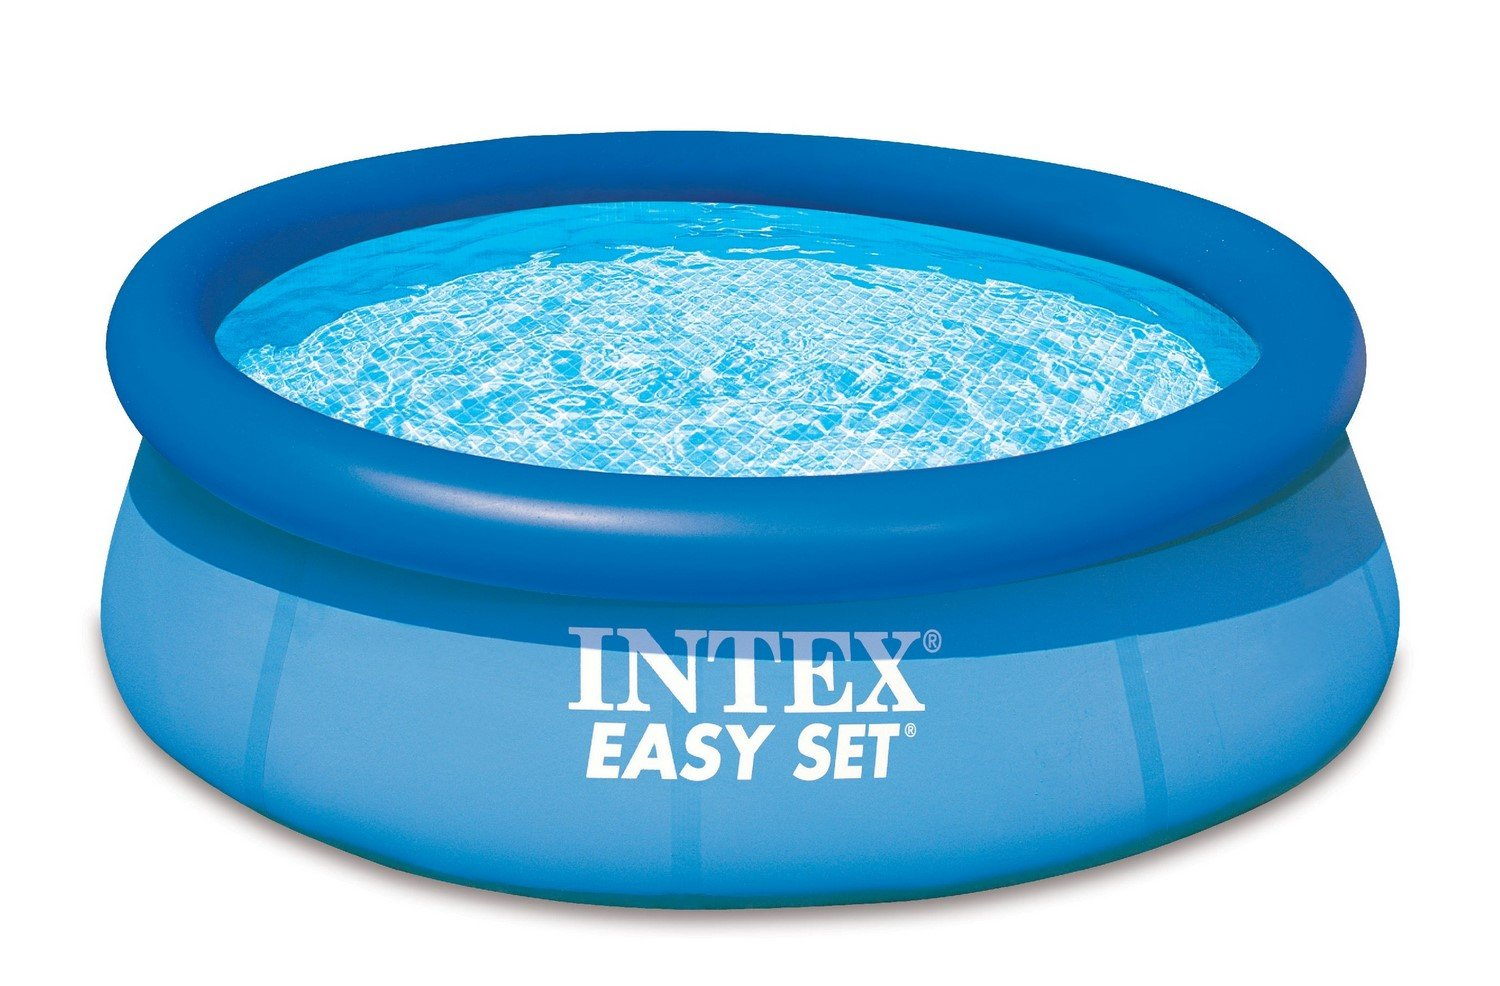 intex easy set pool without filter blue 8 39 x 30 ebay. Black Bedroom Furniture Sets. Home Design Ideas